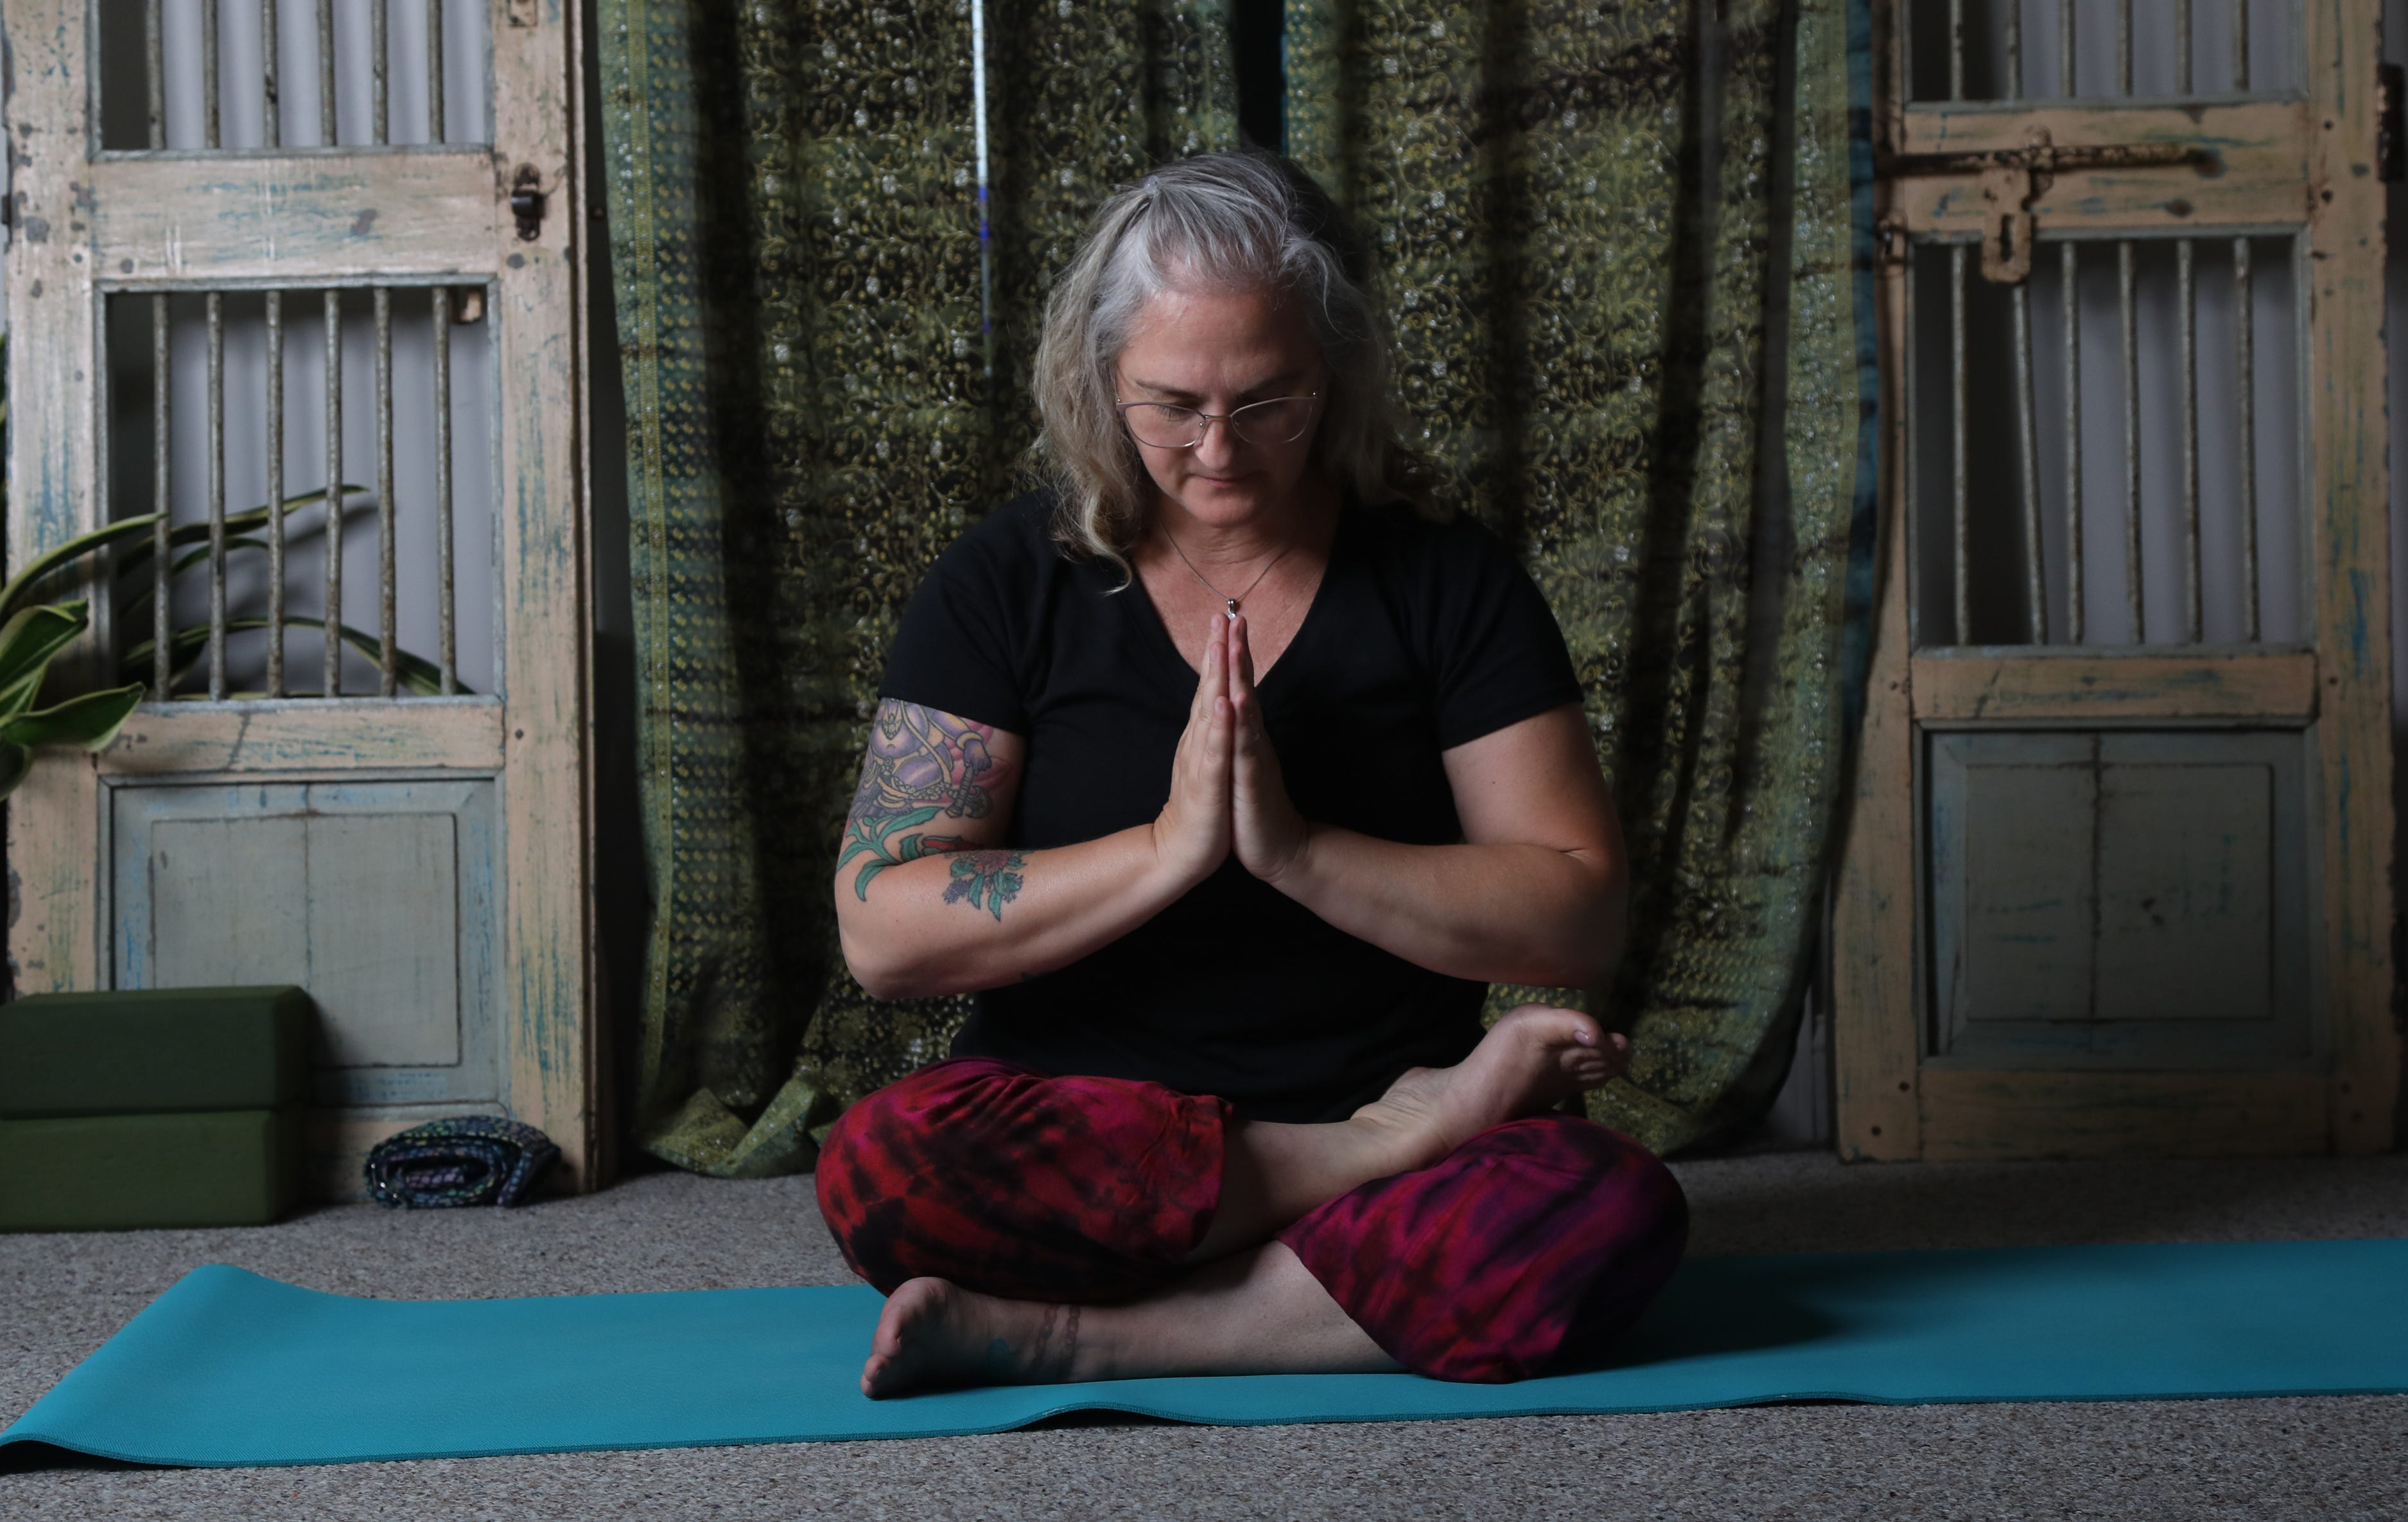 Dr. Tracey Ulshafer does her Yoga workout in her Hightstown, NJ studio on July 29, 2021. As related to traditional religion, she teaches Yoga as an appreciation and acknowledgment of spiritual fulfillment.